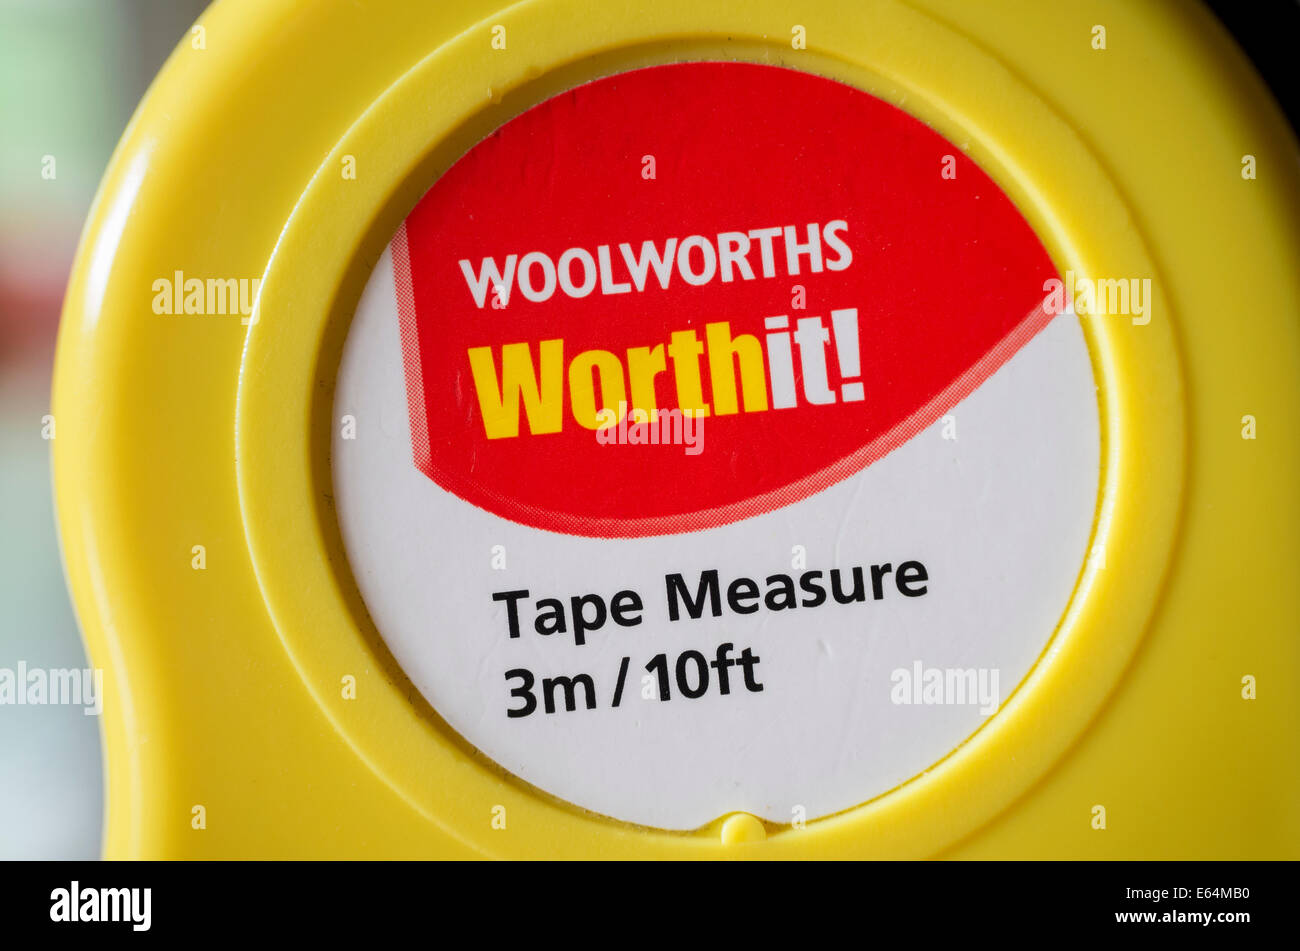 Old Woolworths tape measure - Stock Image